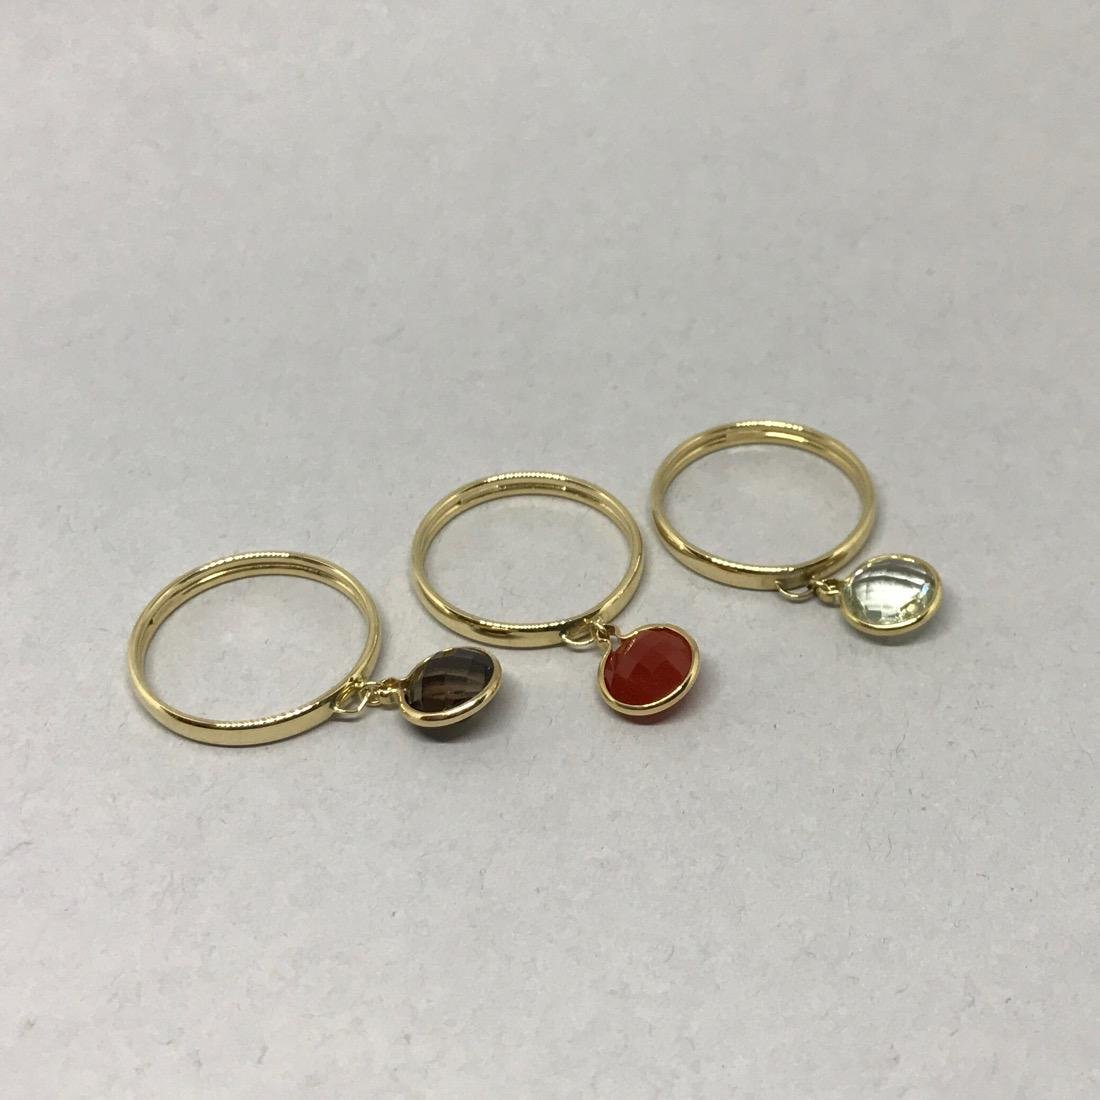 Set of 3 14K Gold Rings with Gemstone Charms